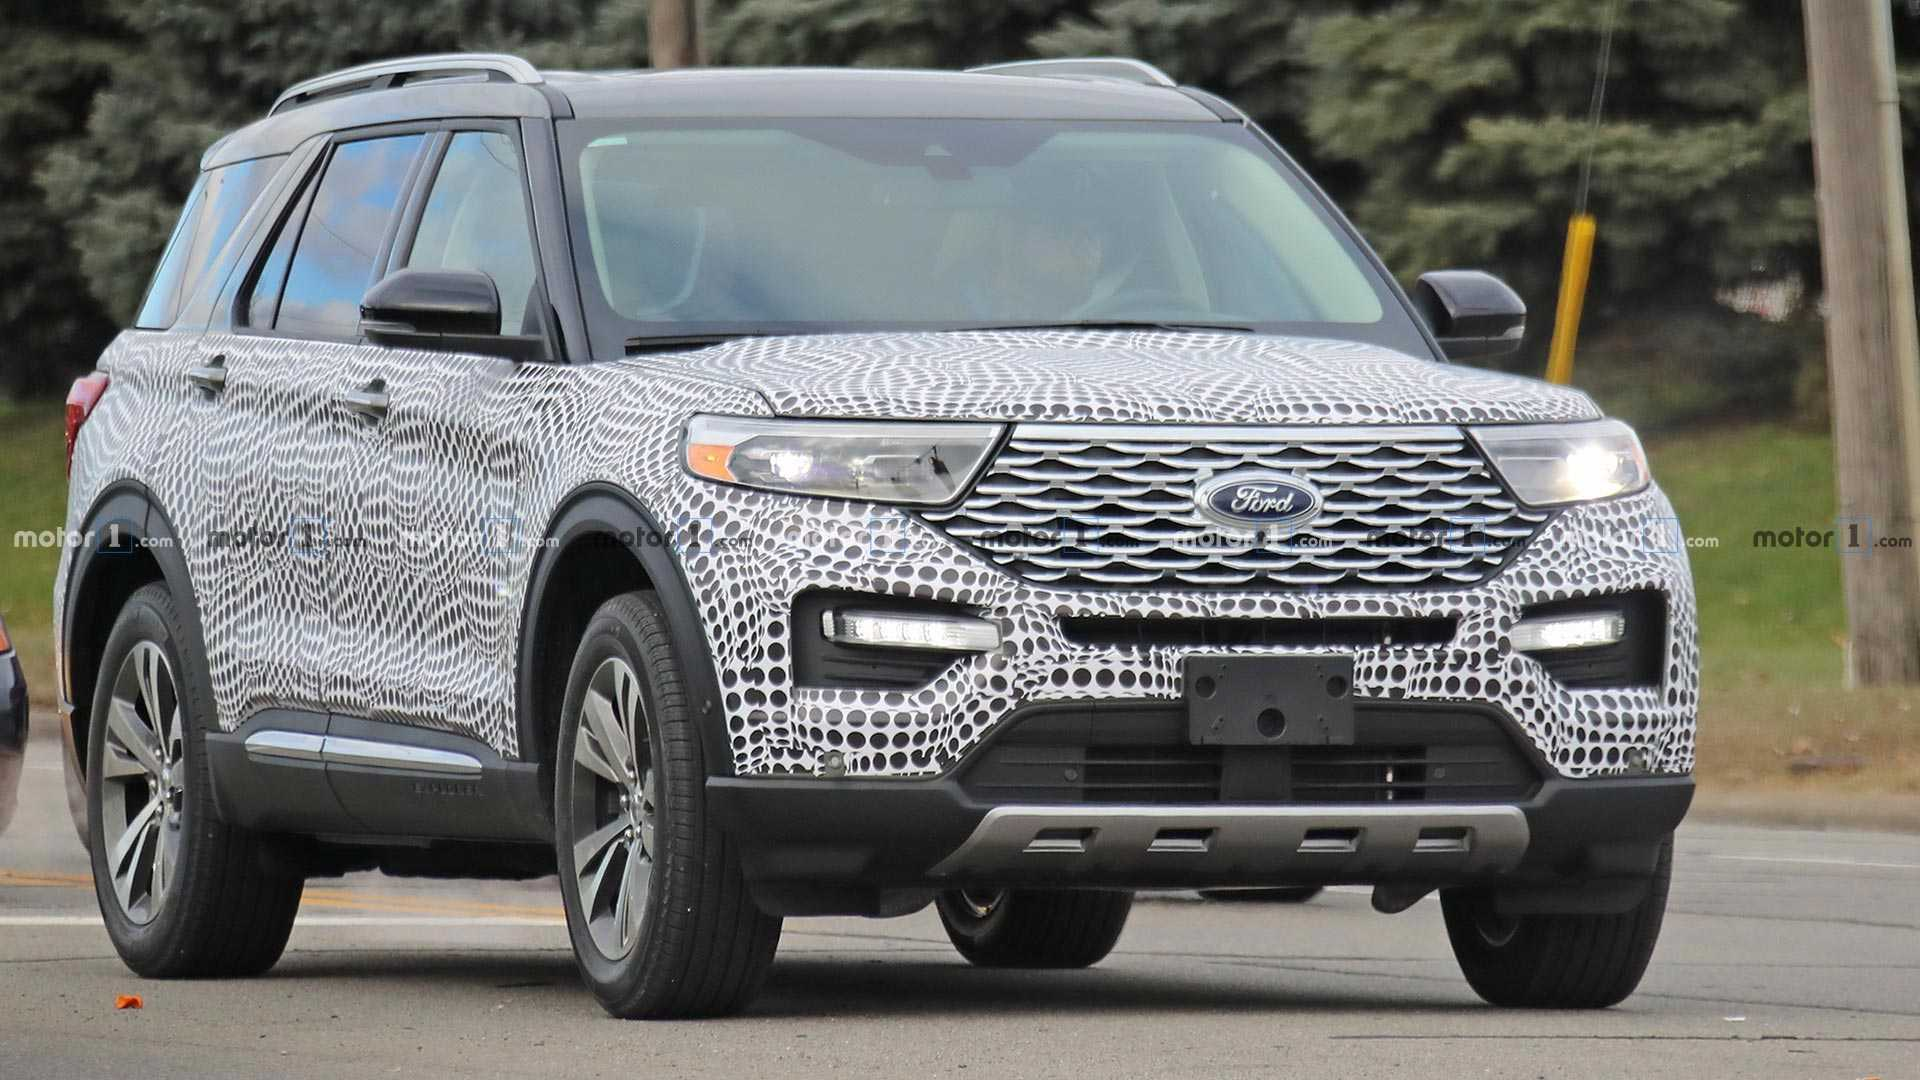 30 A 2020 Ford Explorer Job 1 Prices